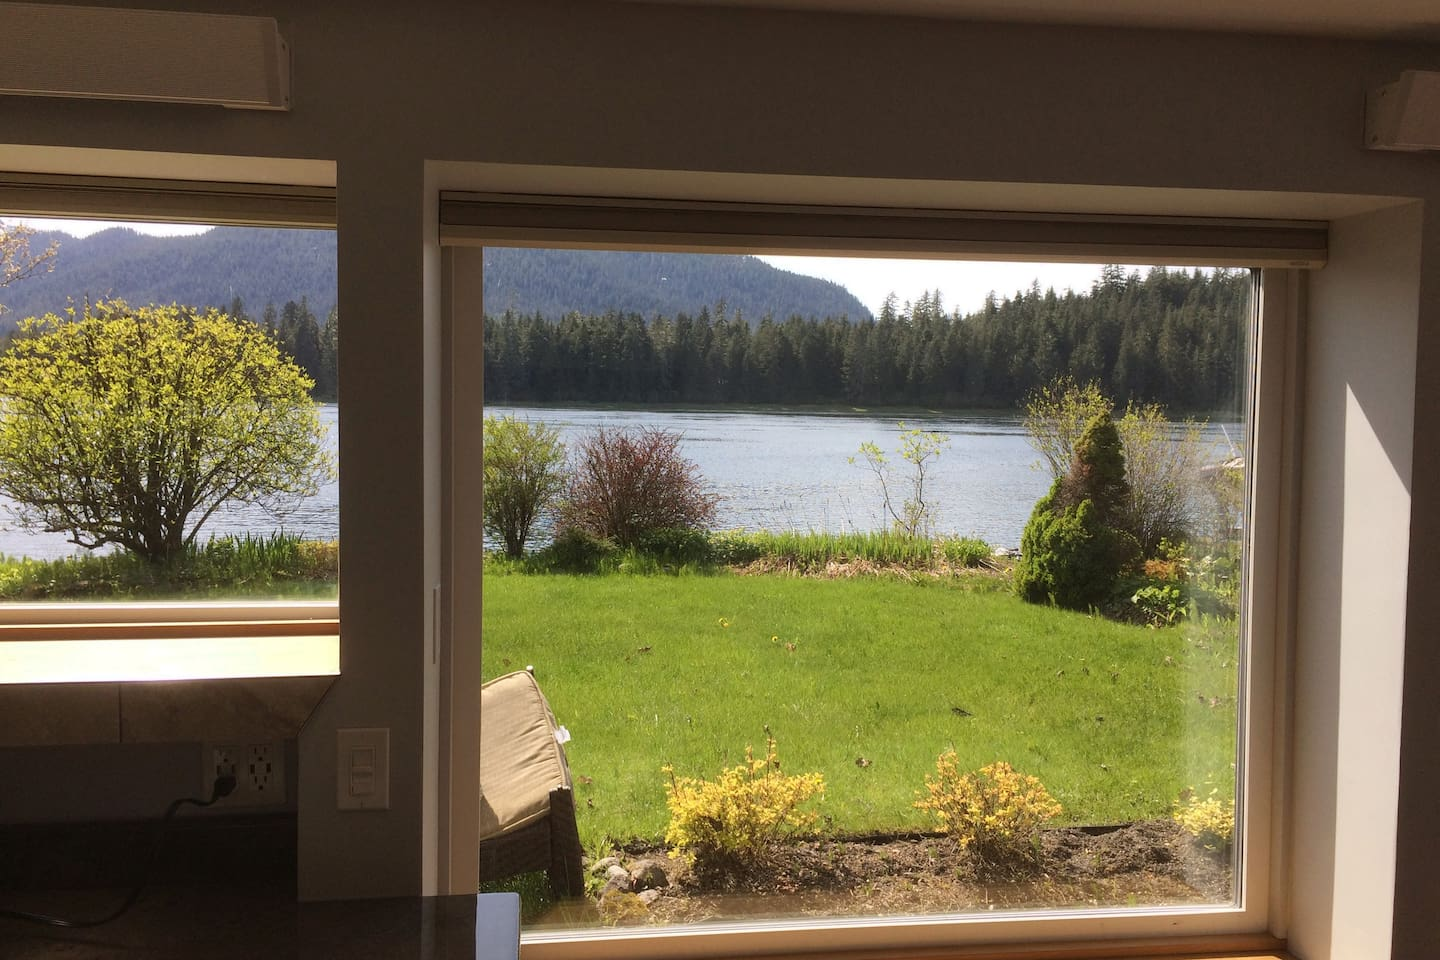 A view from the suite looking West out over the Wrangell Narrows. Beach access to explore the tidal area just beyond the yard.